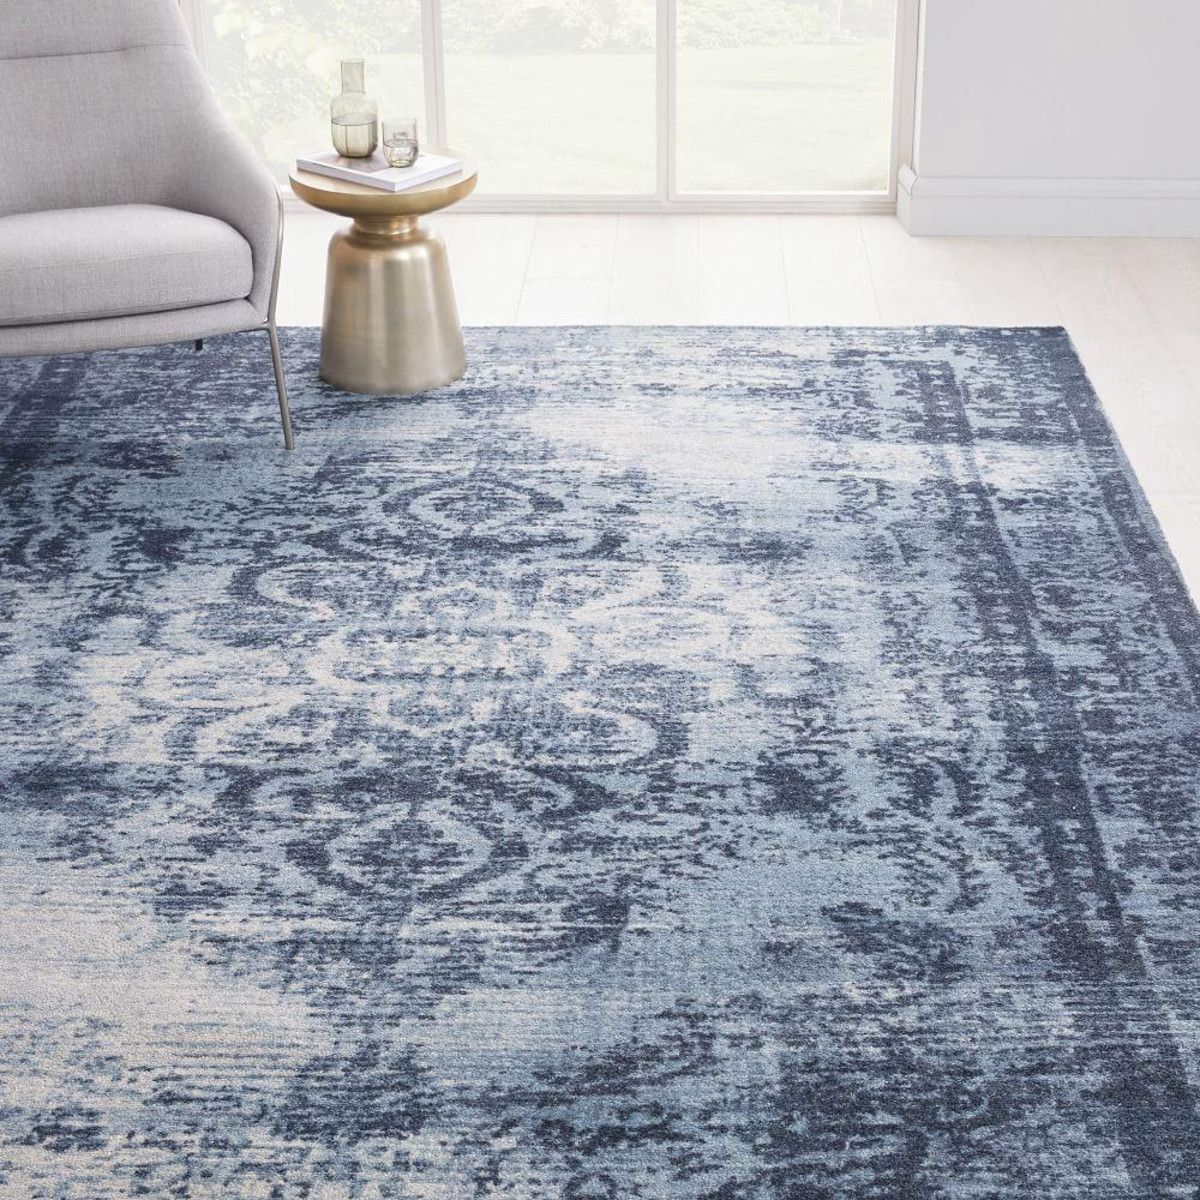 Distressed Arabesque Wool Rug In 2020